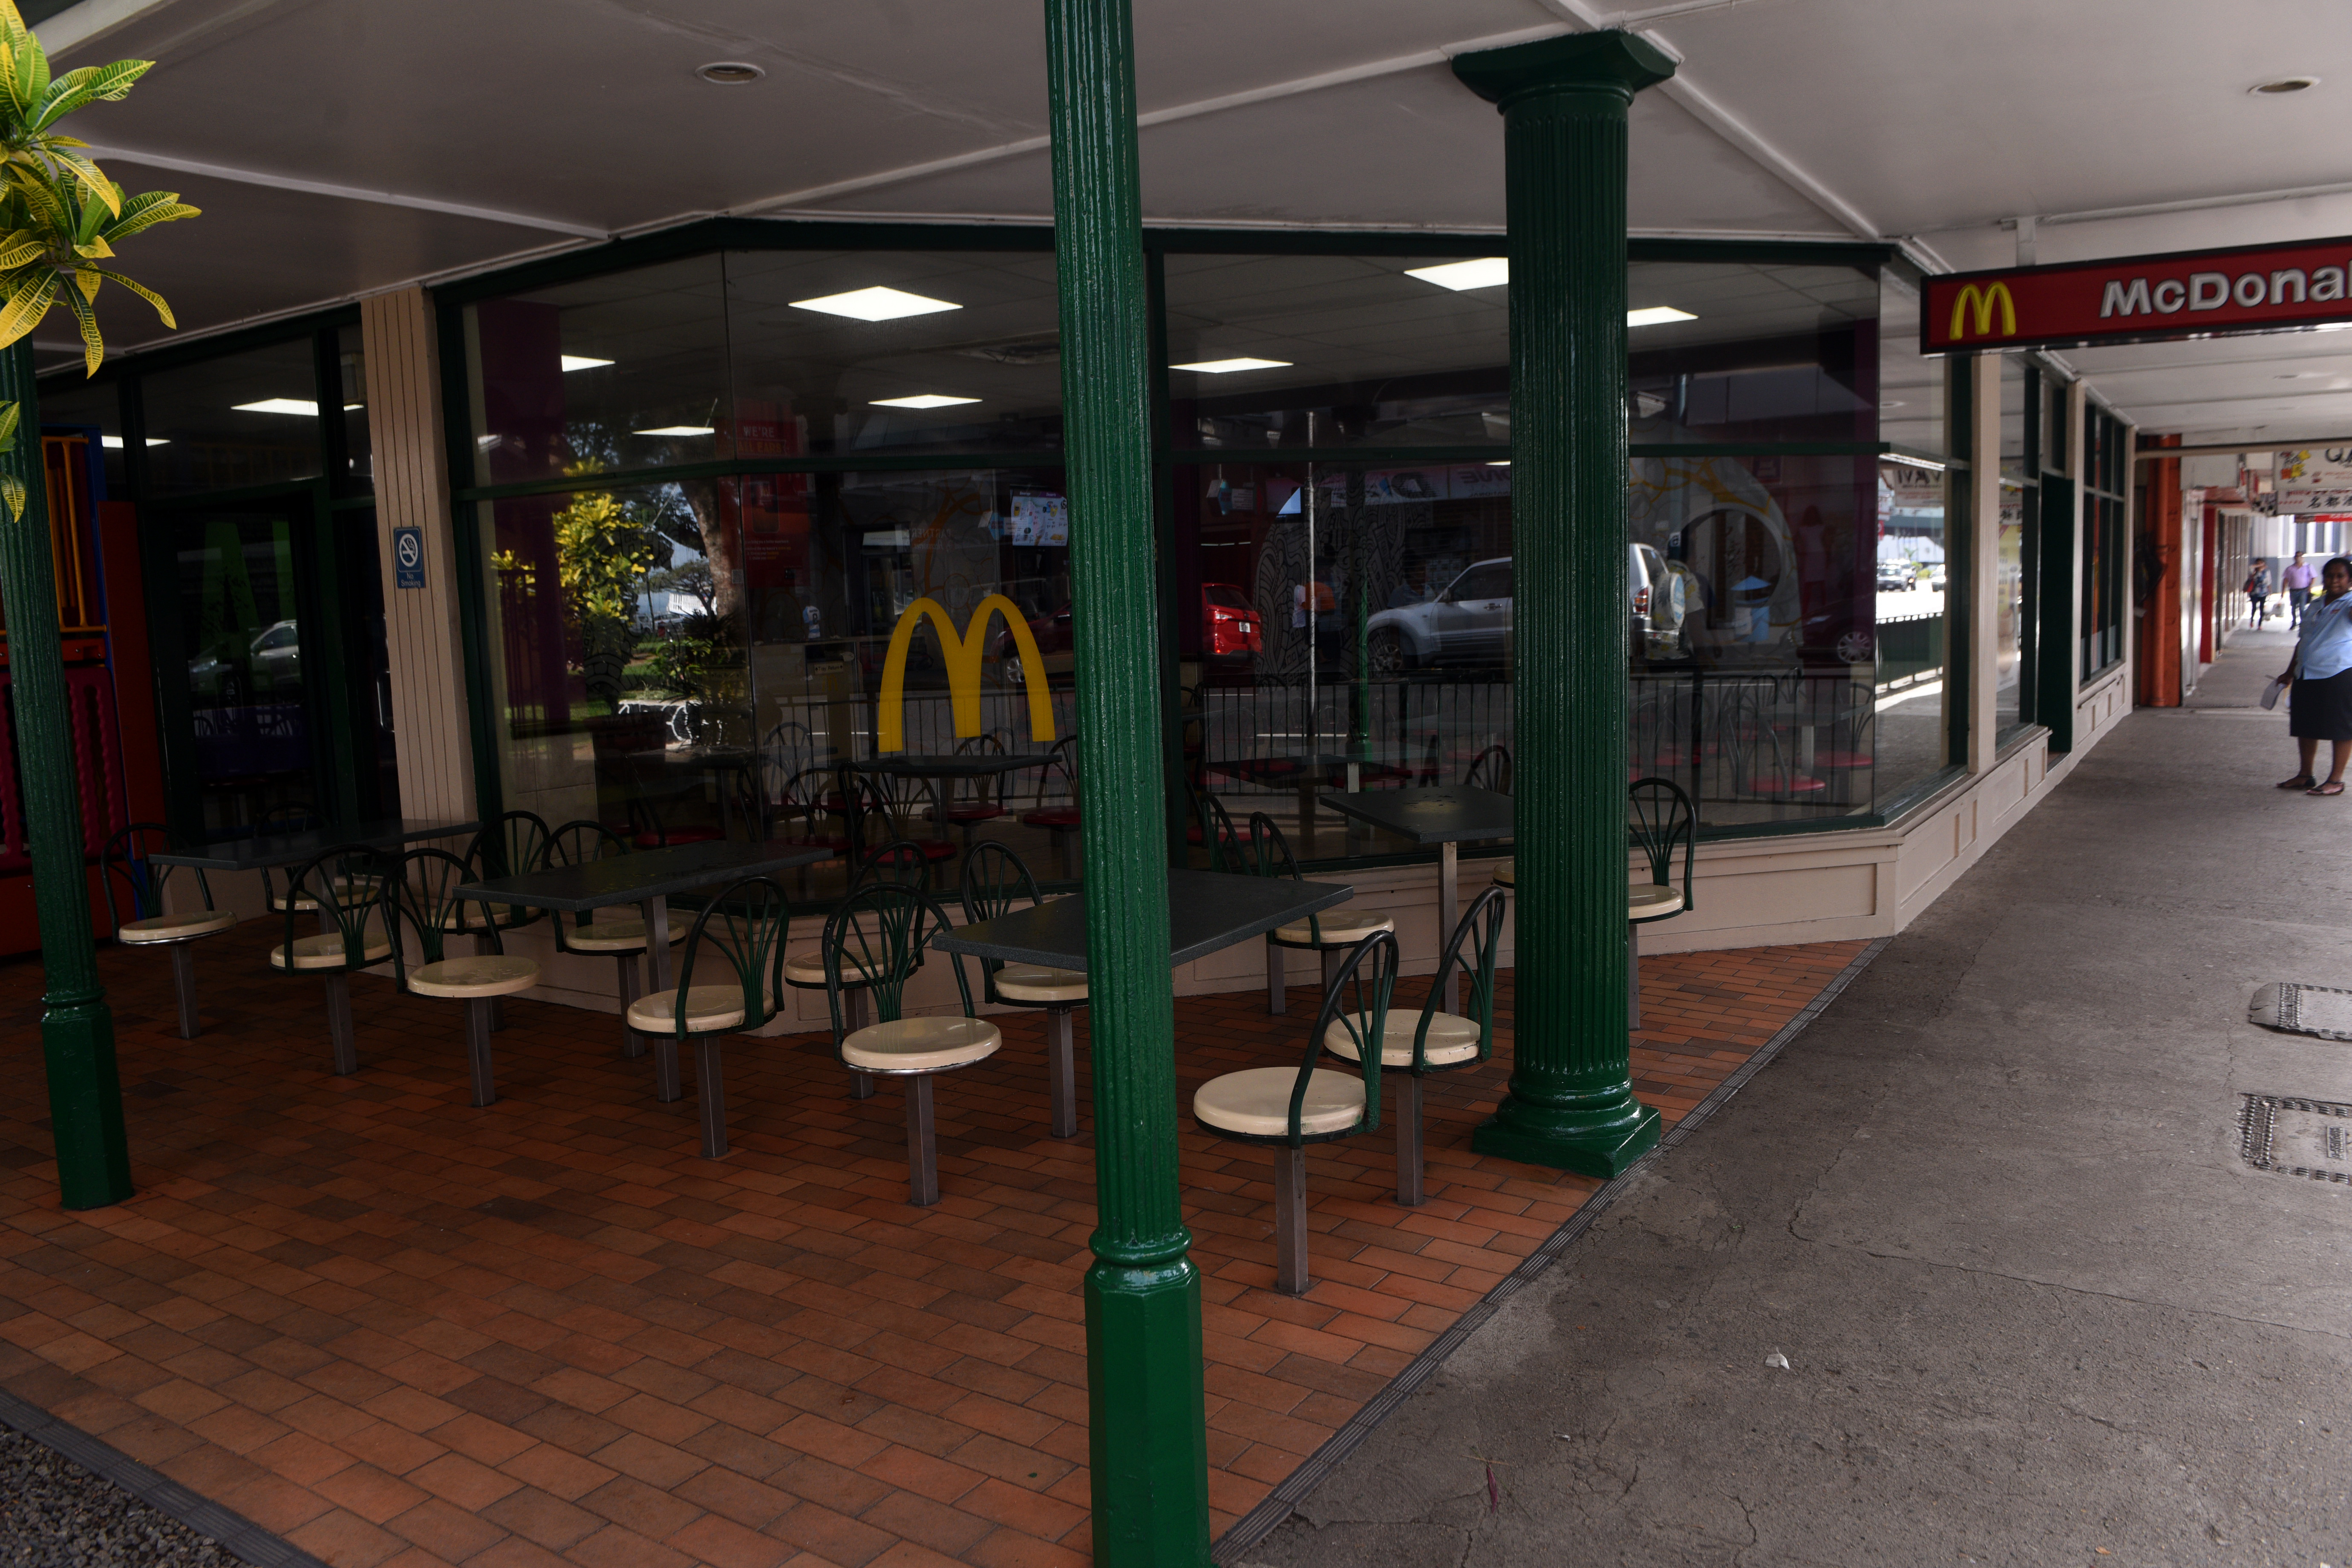 Asbestos threat led to the closure of MacDonals on June 2nd, 2017. Photo:Jone Luvenitoga